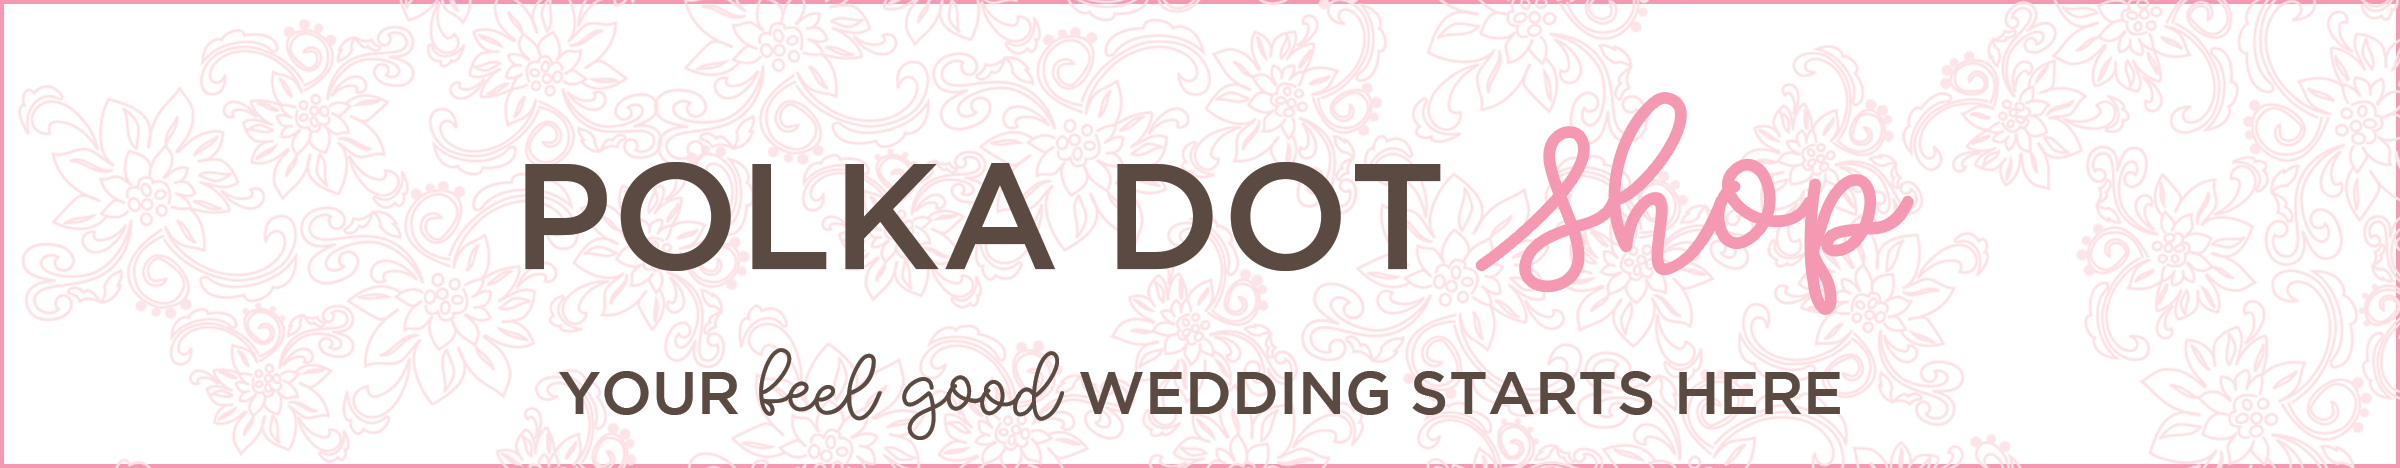 Polka Dot Bride Shop